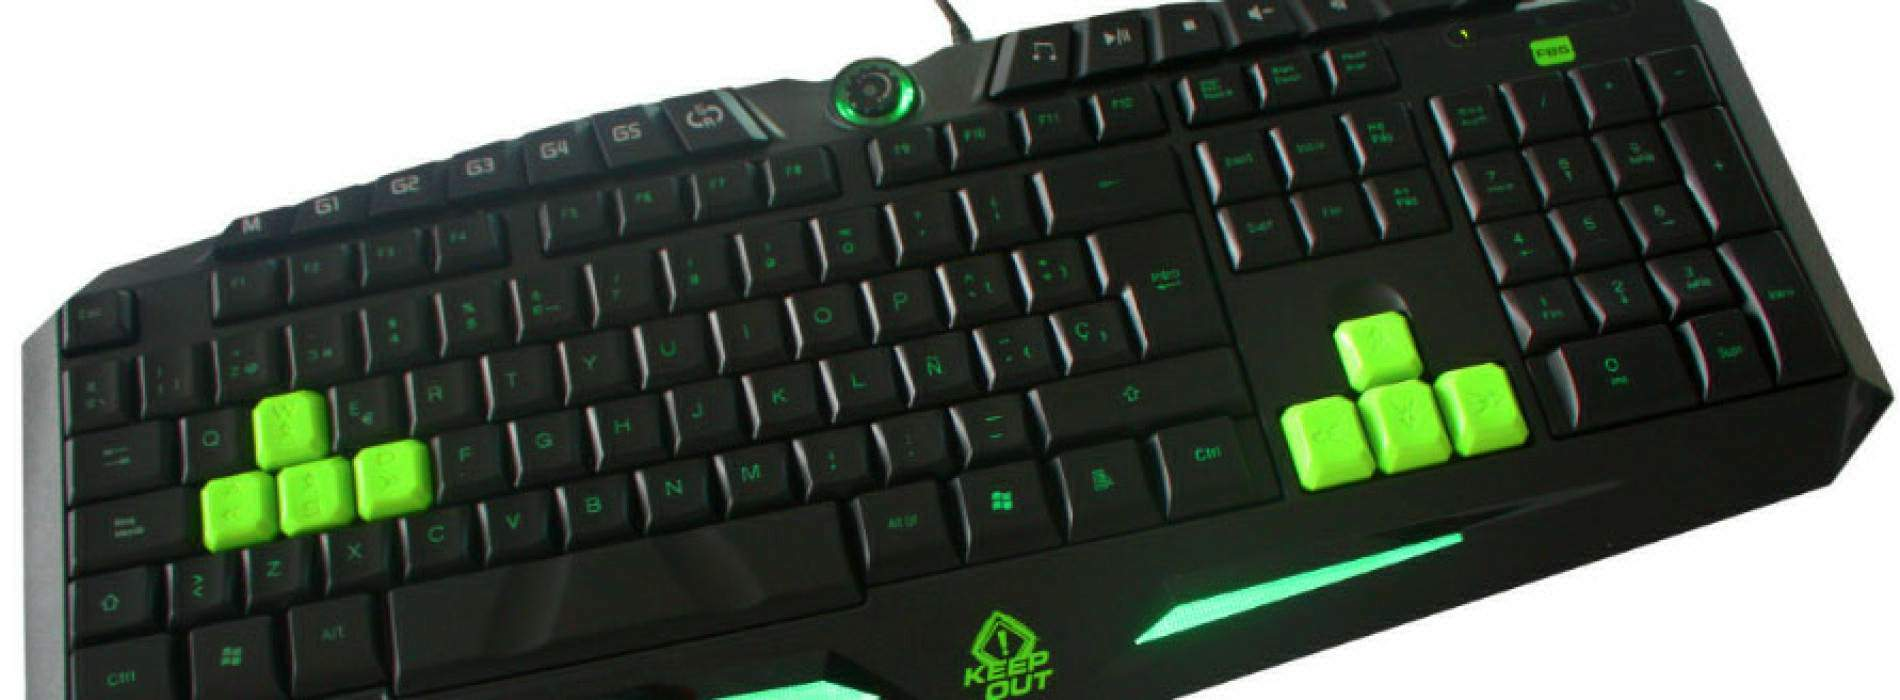 Nace Keep Out, nueva marca de productos para gamers